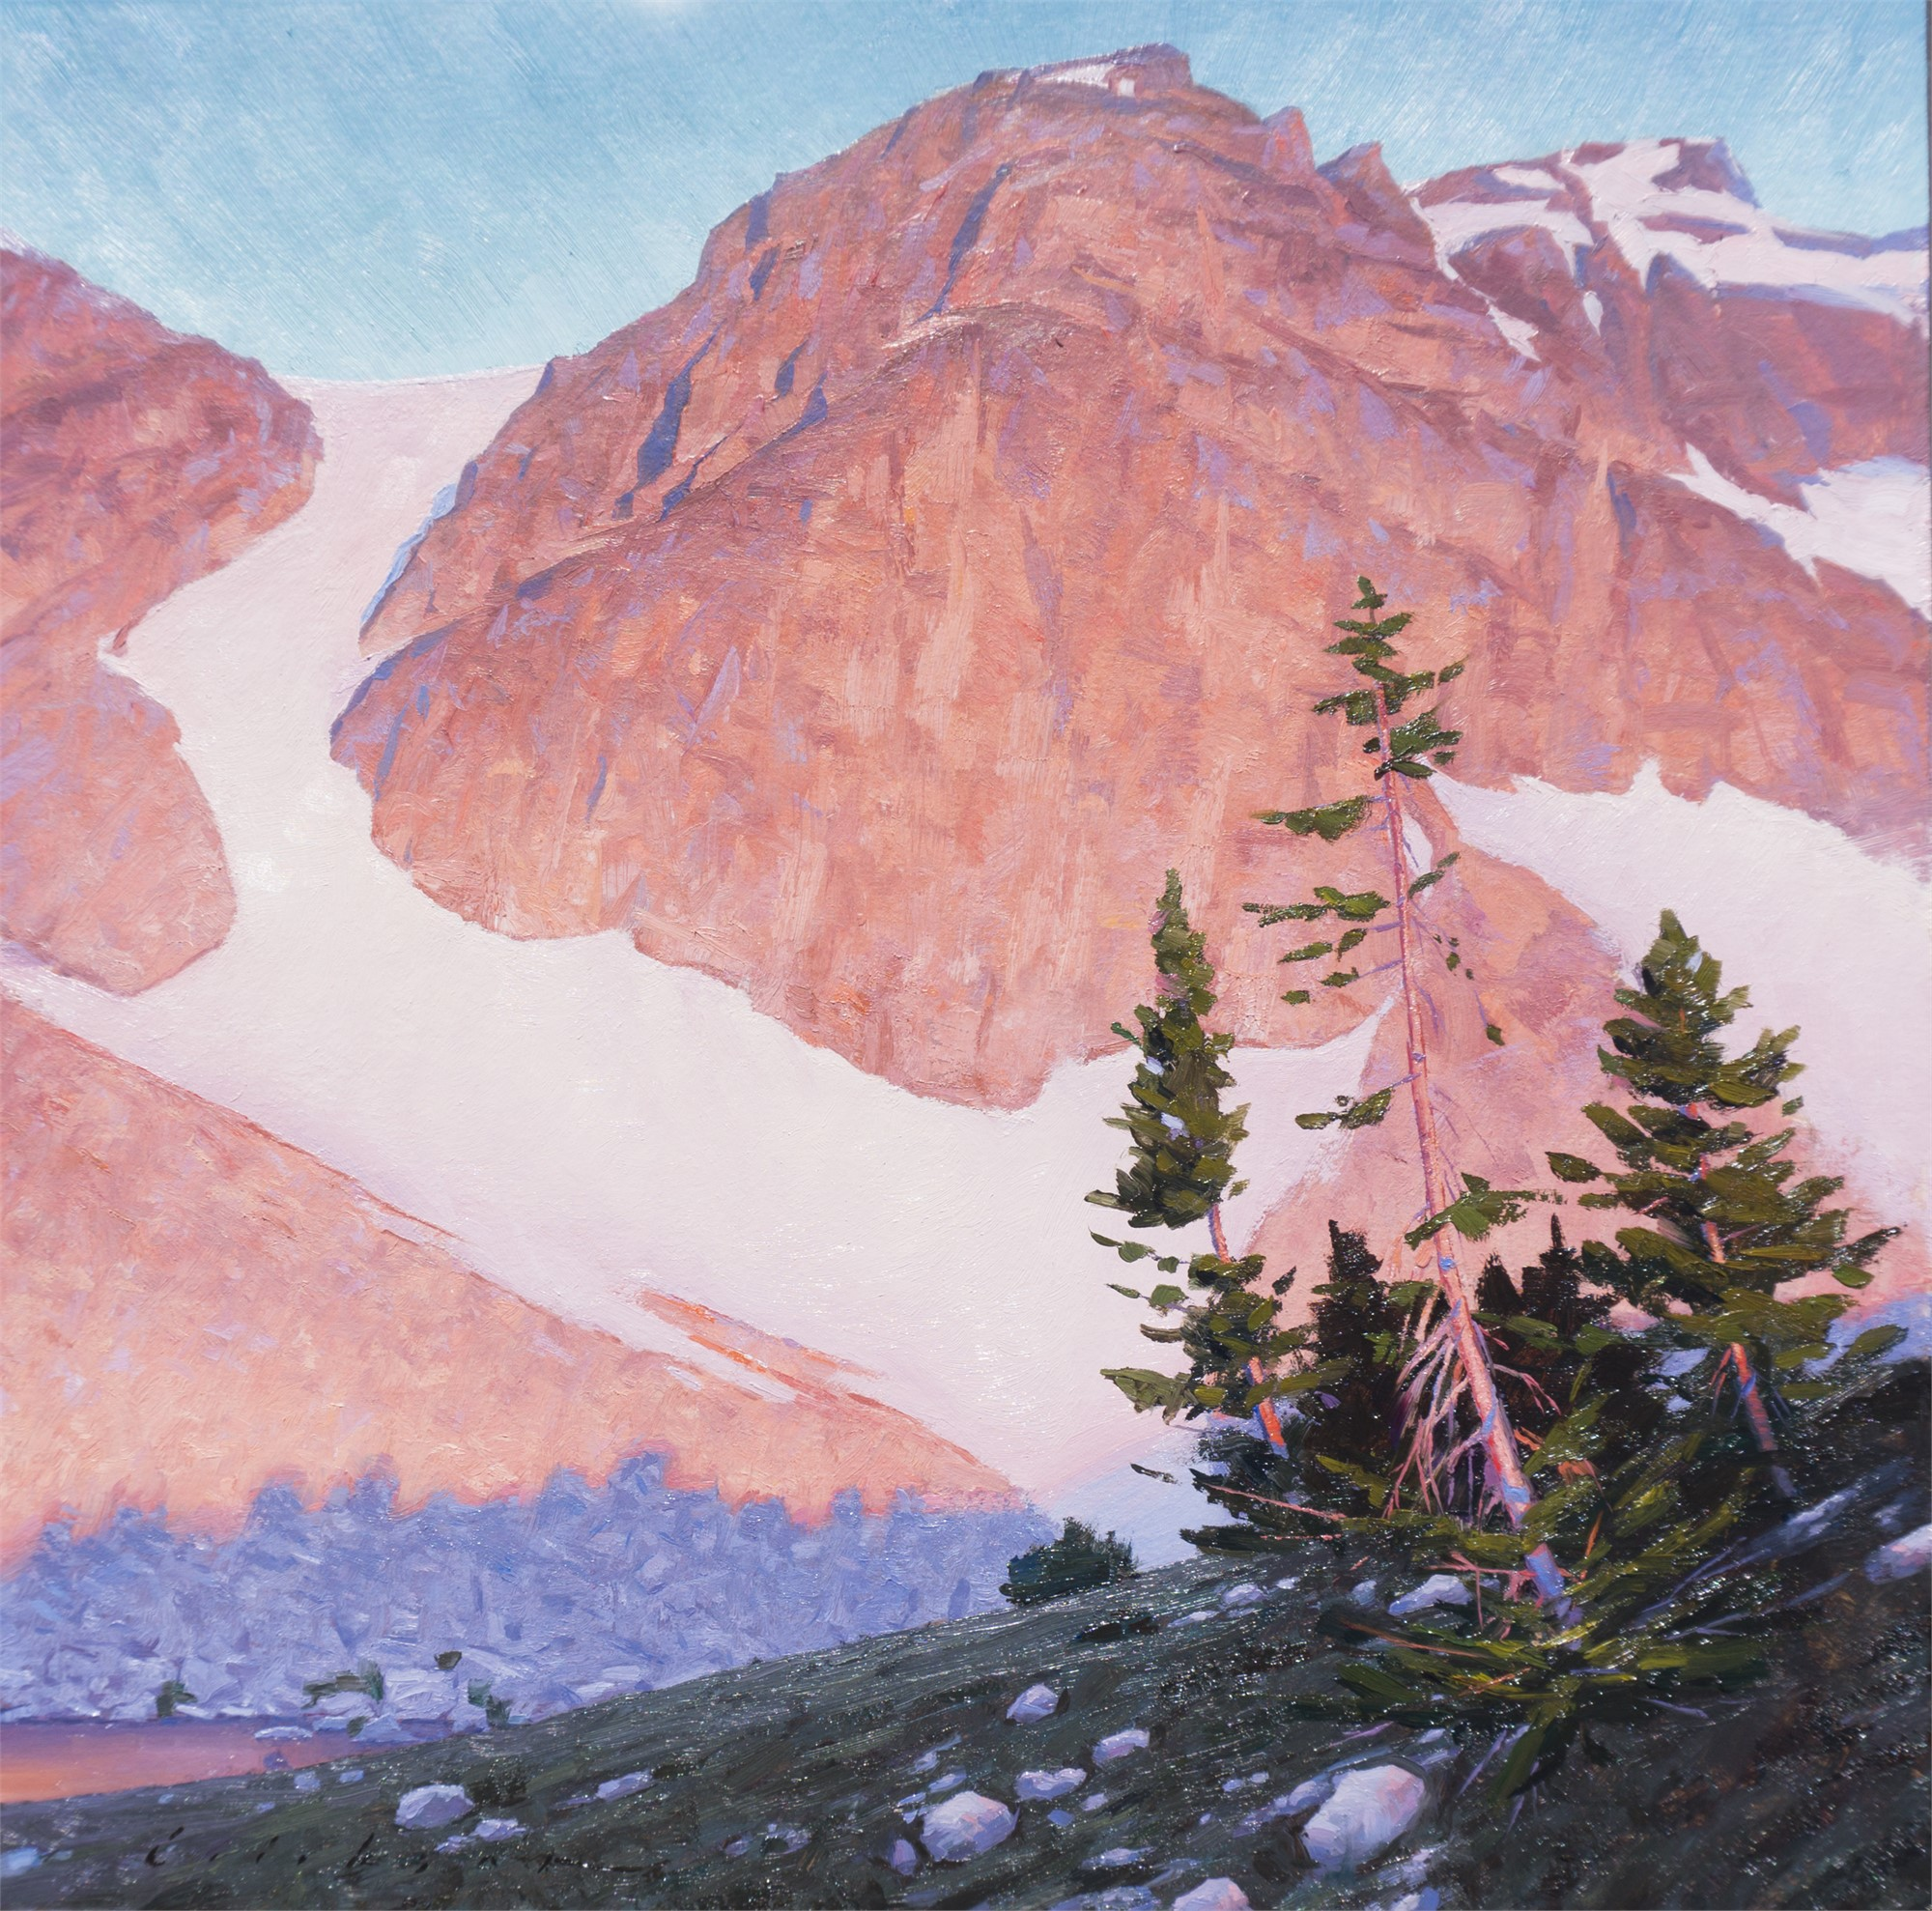 Paintbrush Divide by Cody Erickson